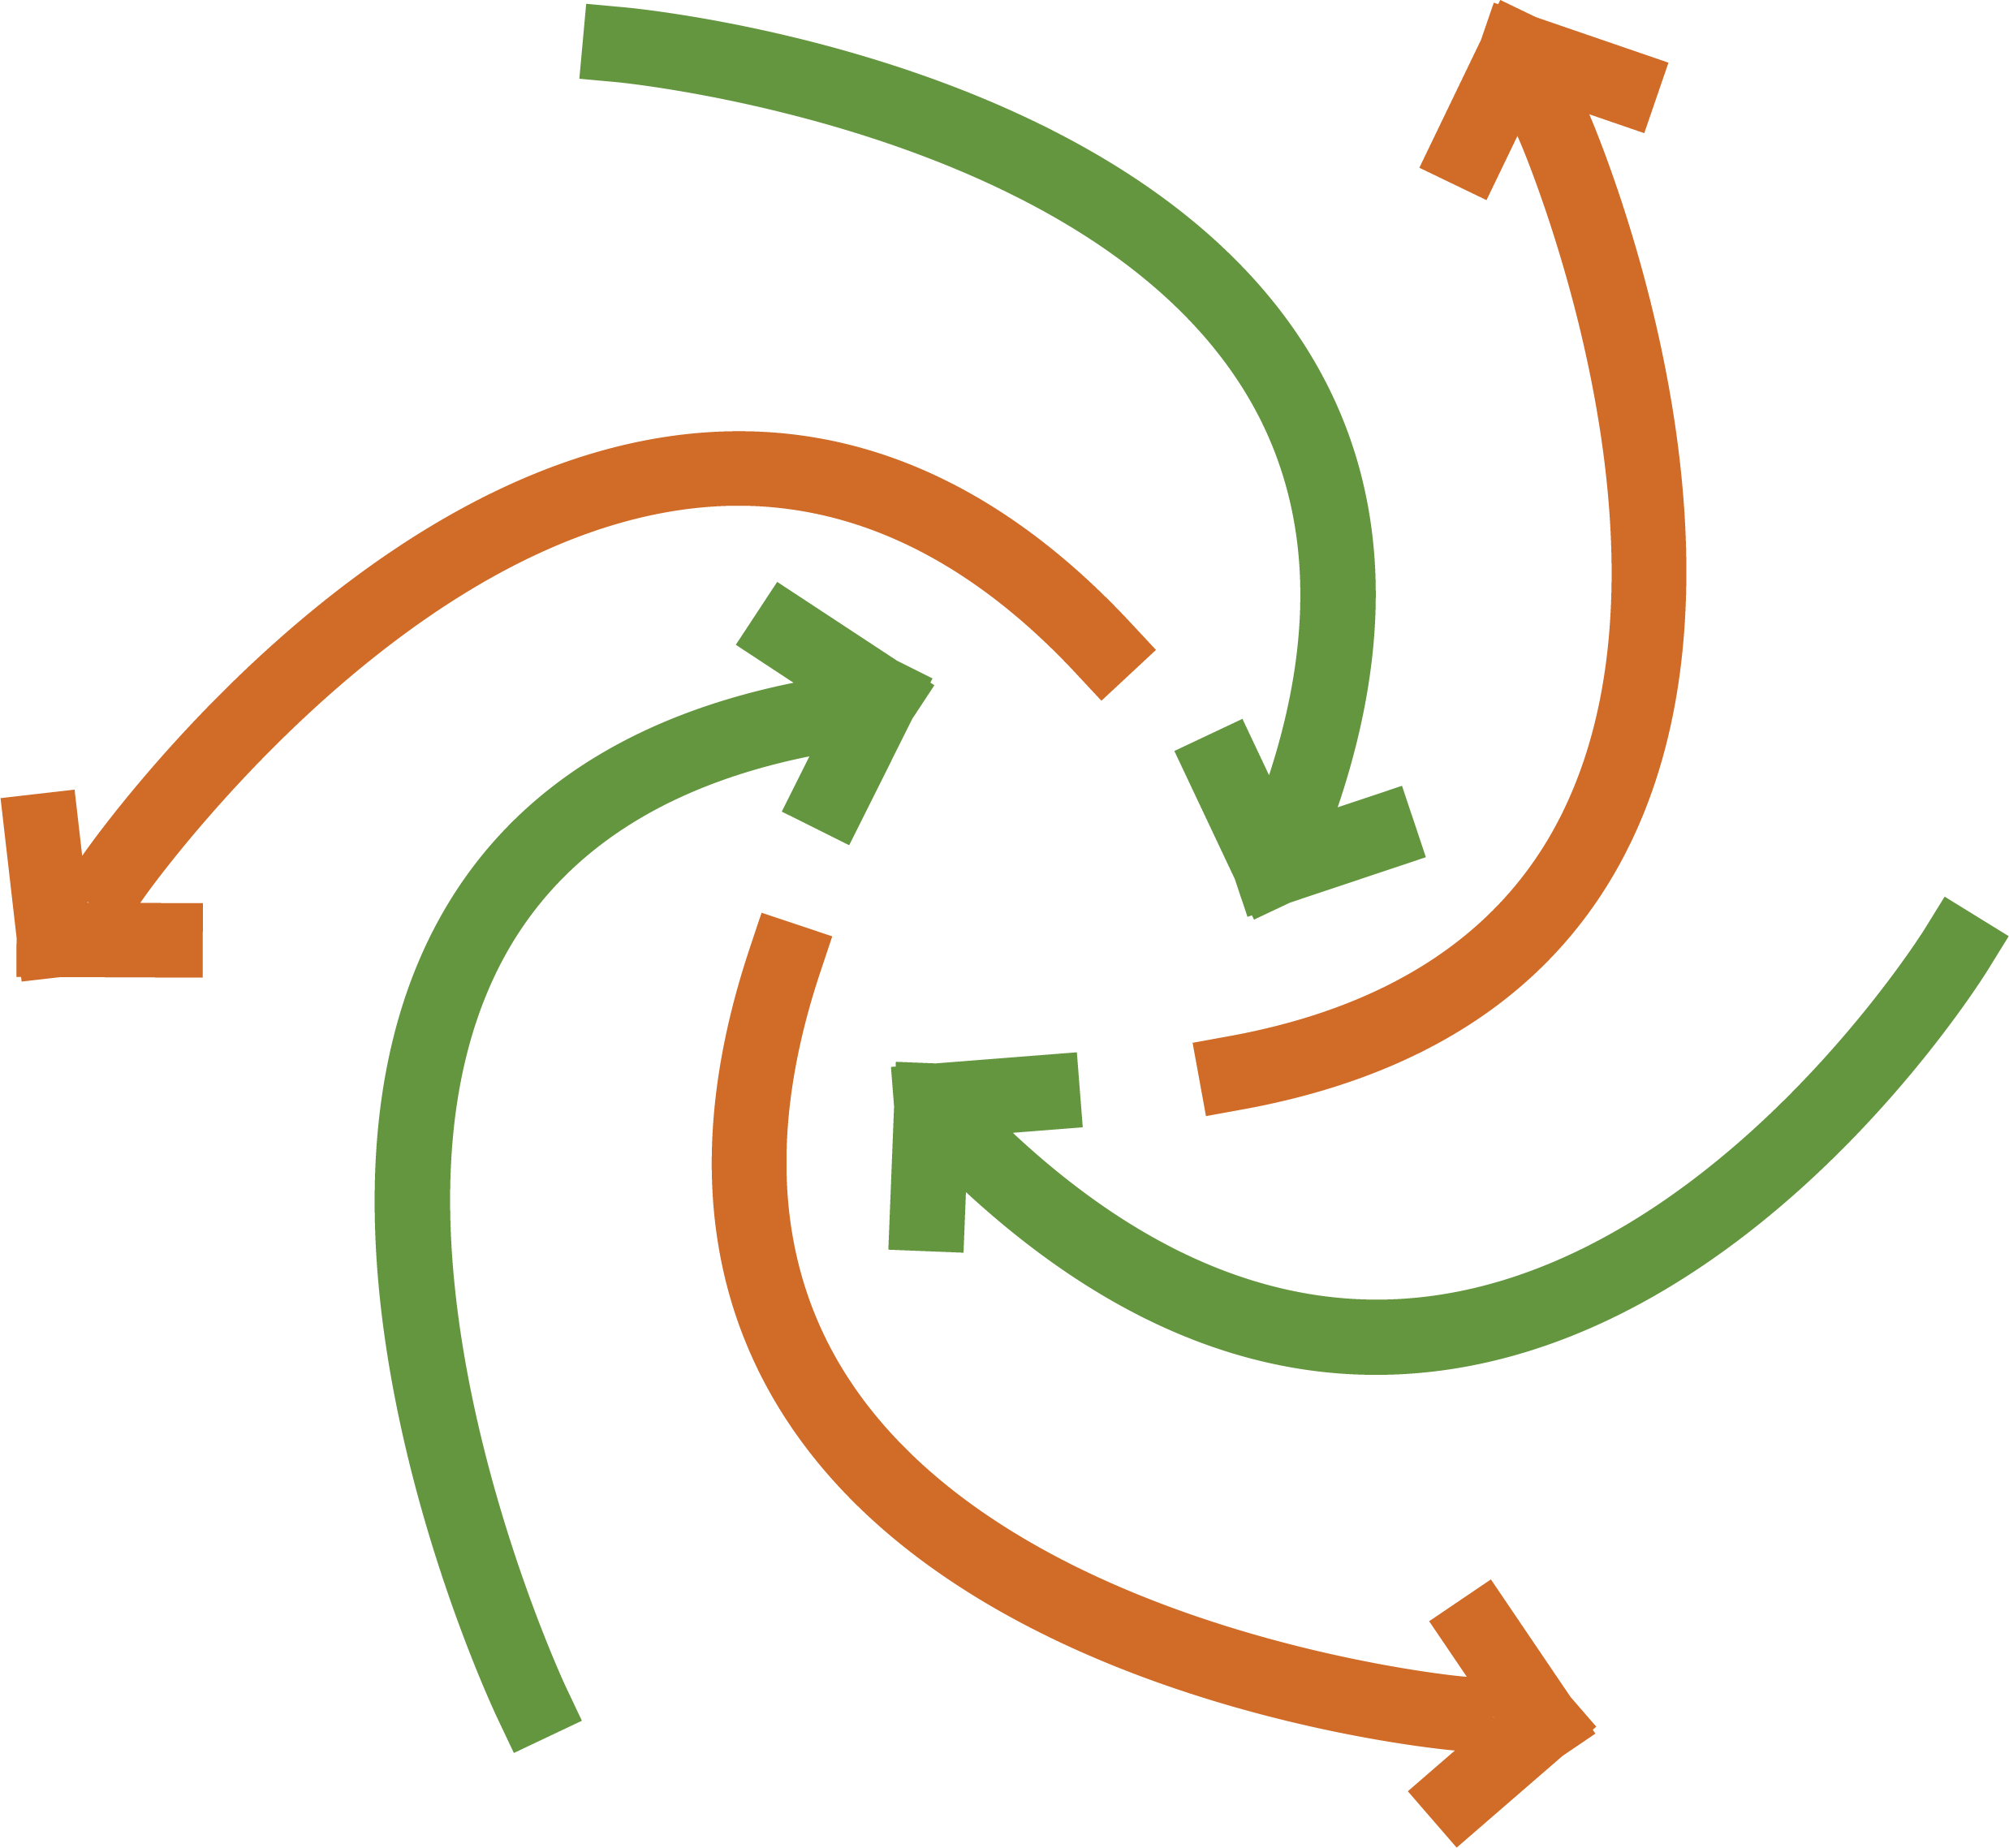 circular green and orange arrows